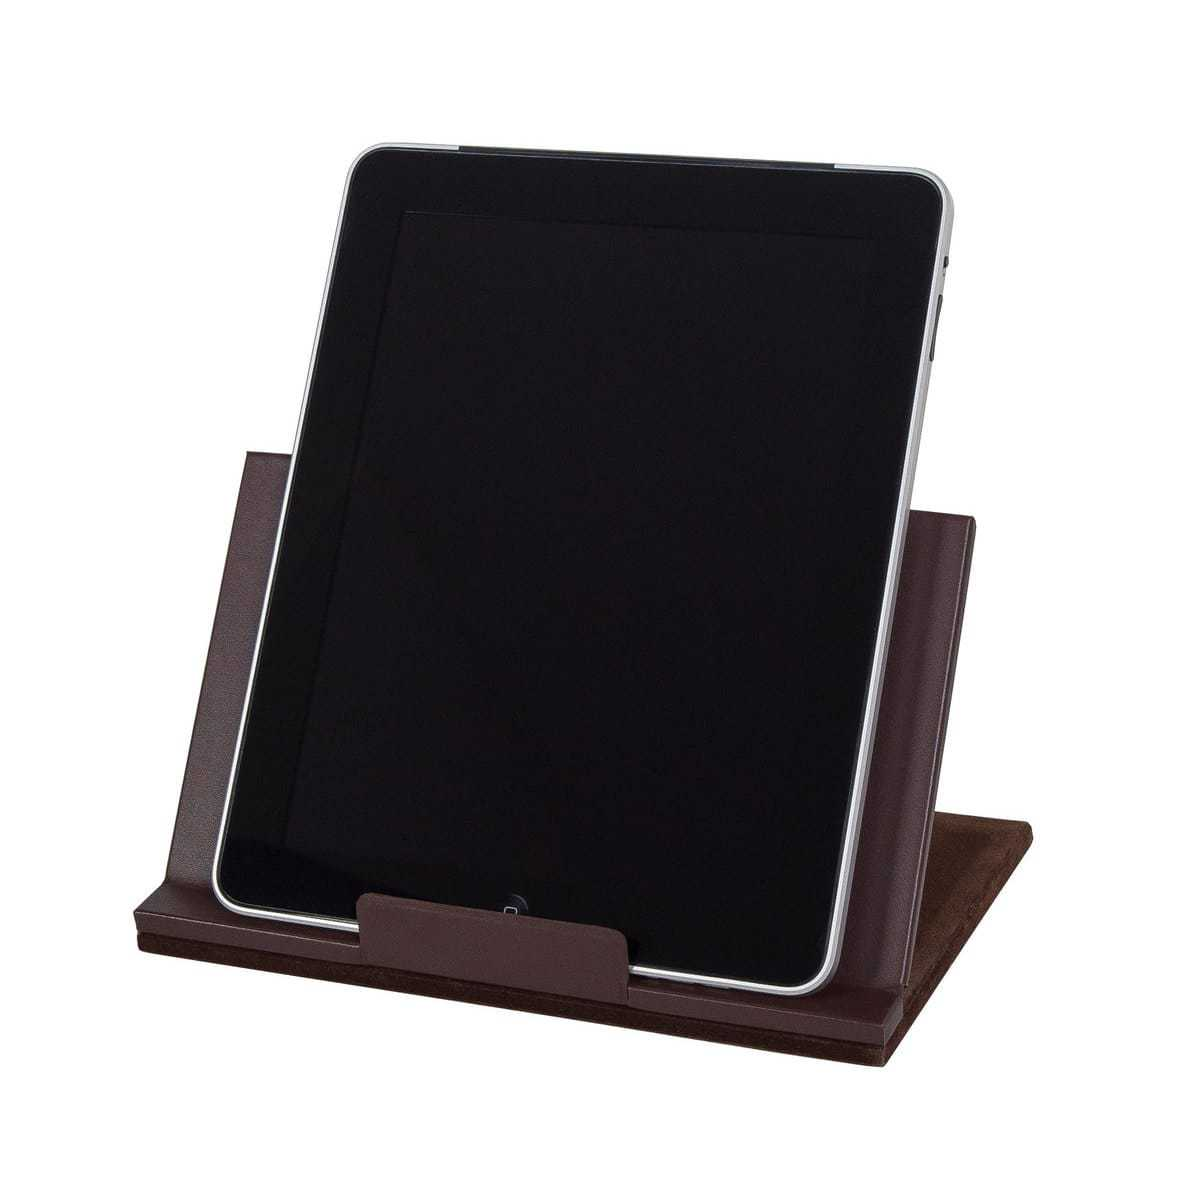 Chocolate Brown Leather Tablet Stand WAUCUSTTAB01